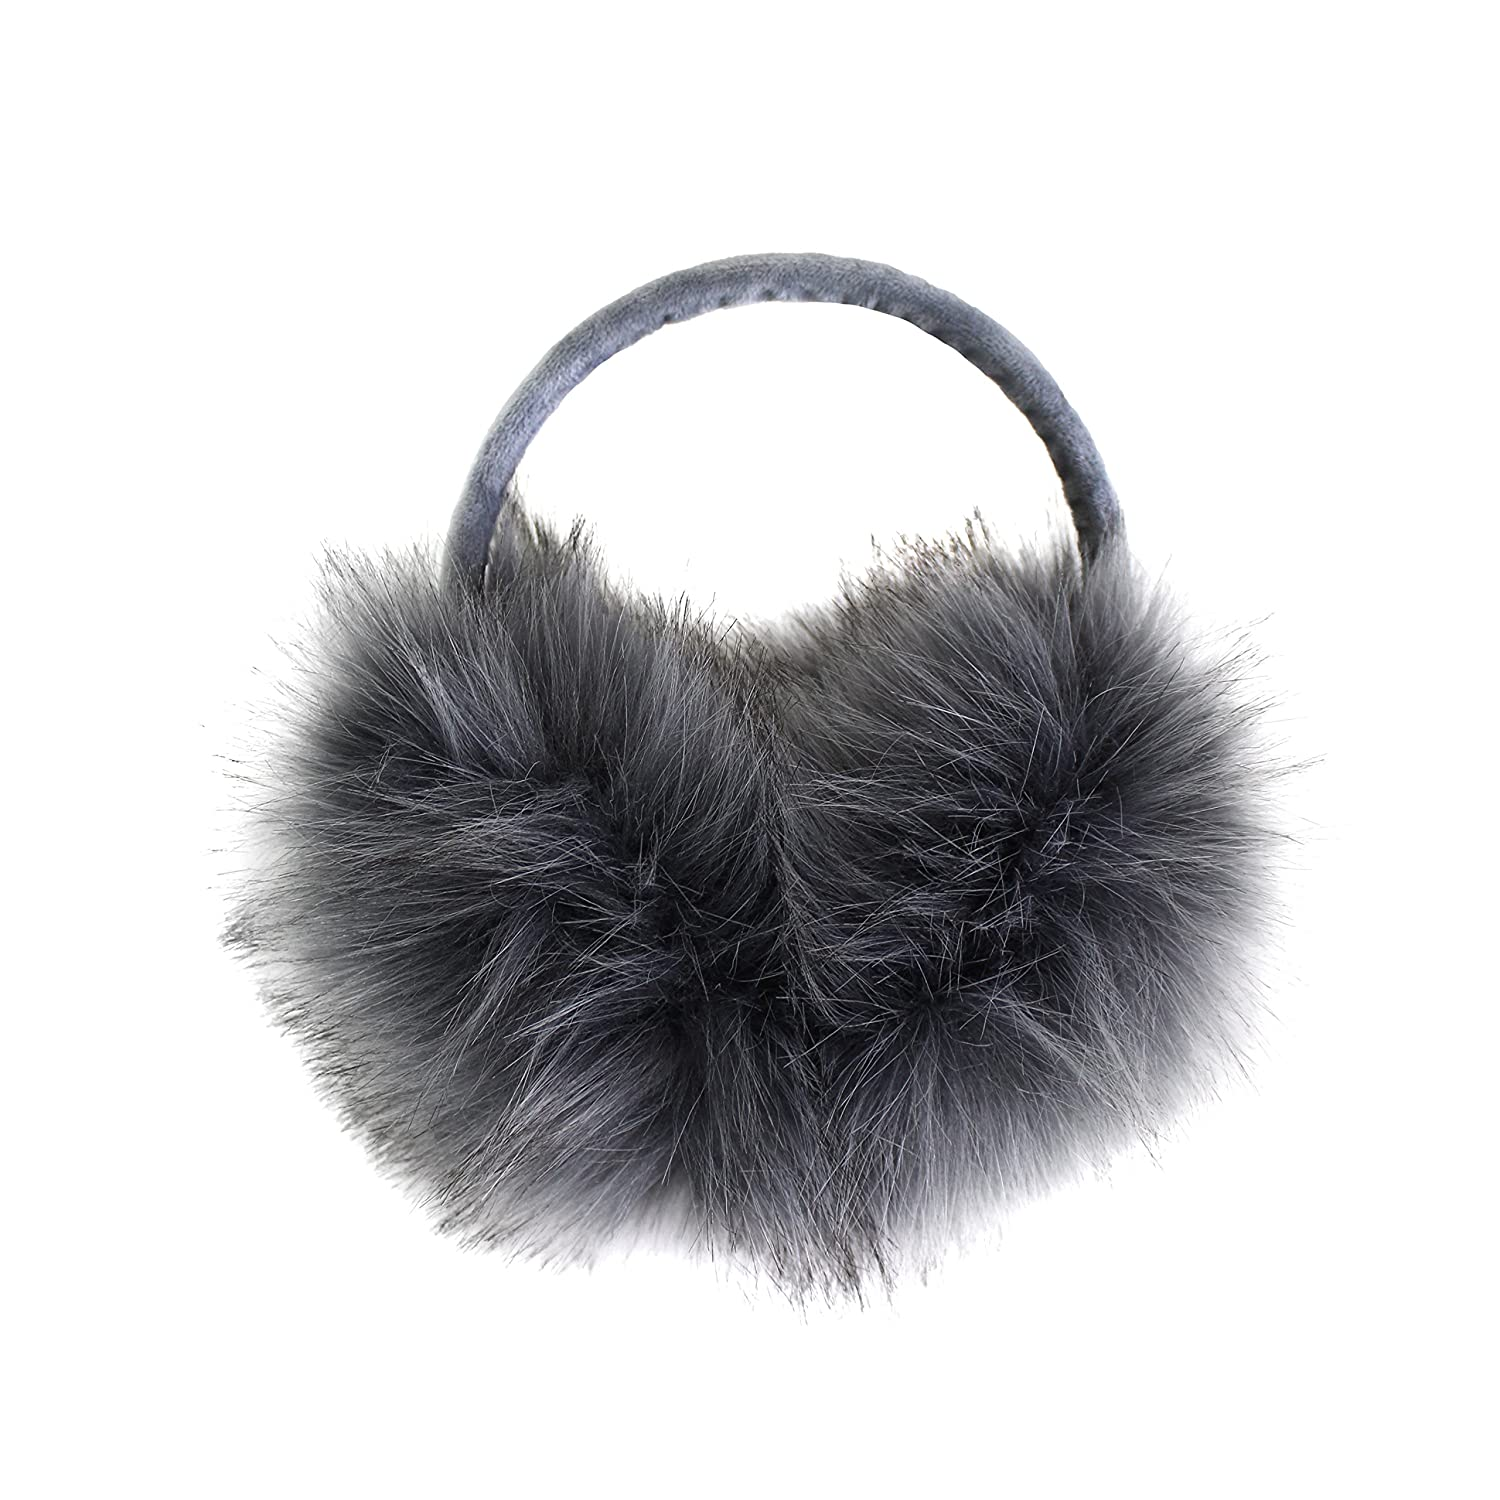 Luxurious Faux Fur Winter Chic Earmuffs- Adjustable Large Oversized Soft Furry Ear Warmers